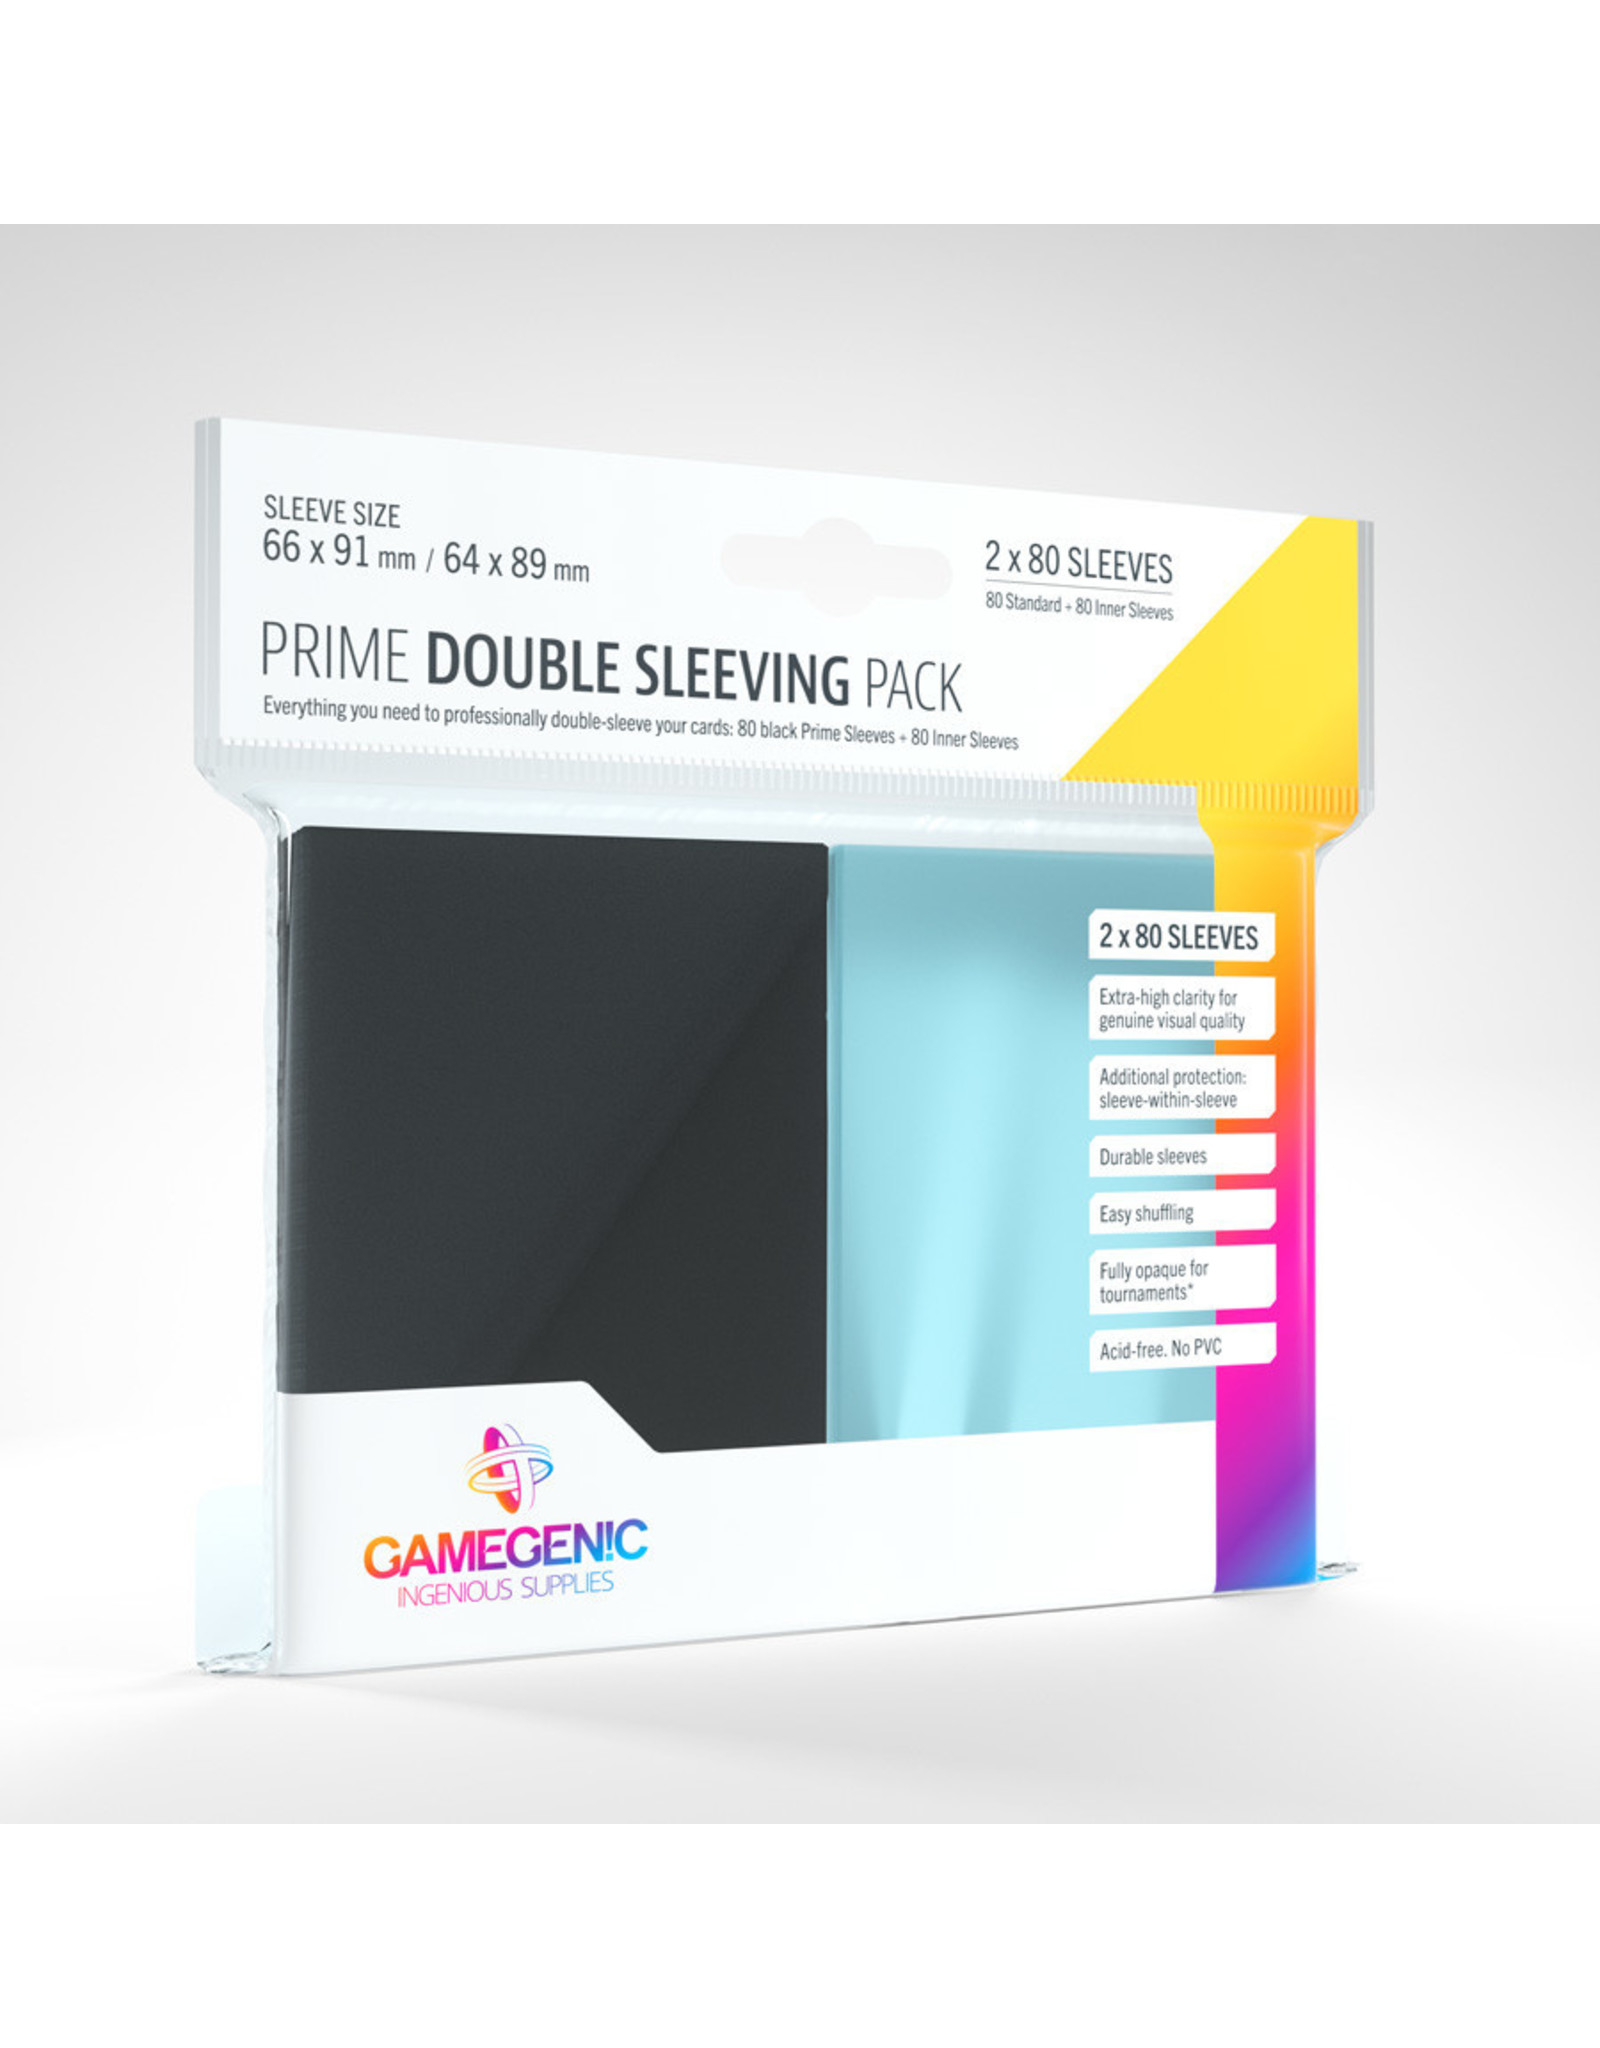 GameGenic DP: Prime Double Sleeving Pack: BK